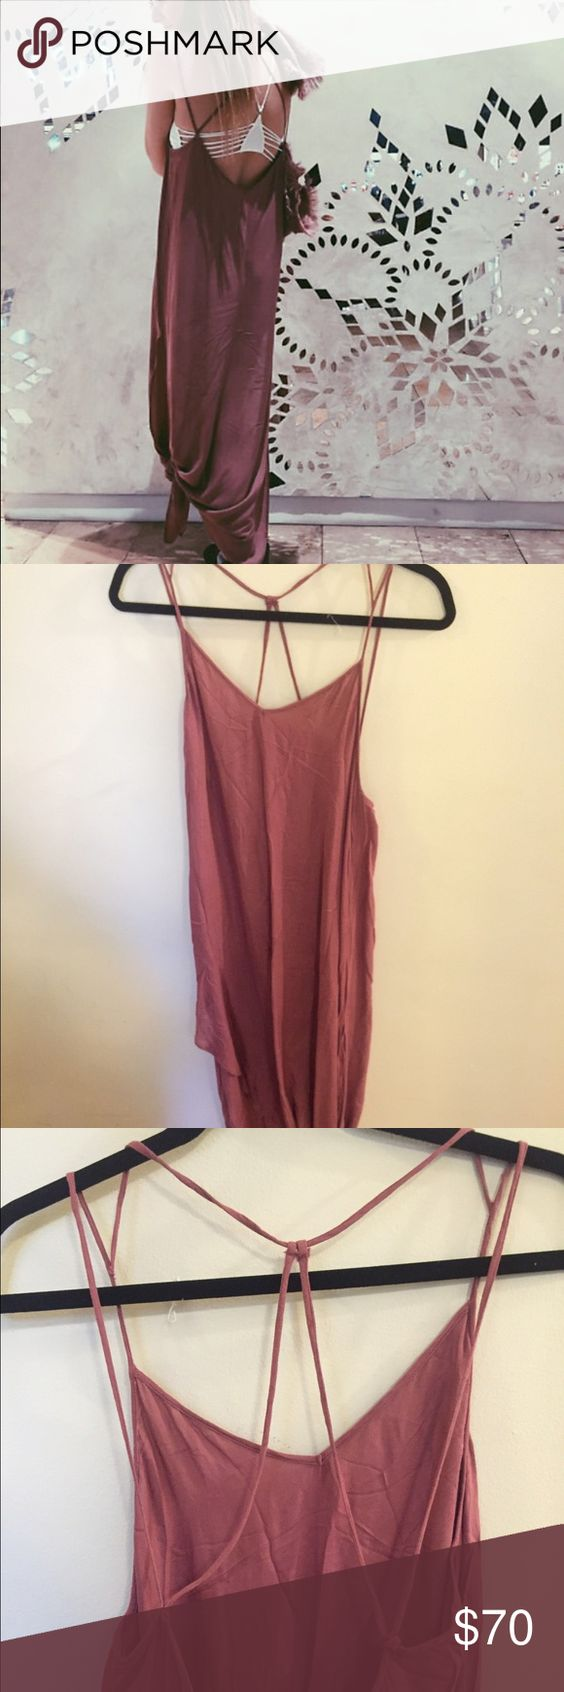 Free People Knotted Tie up Slip Only worn once. Still in excellent condition Free People Intimates & Sleepwear Chemises & Slips